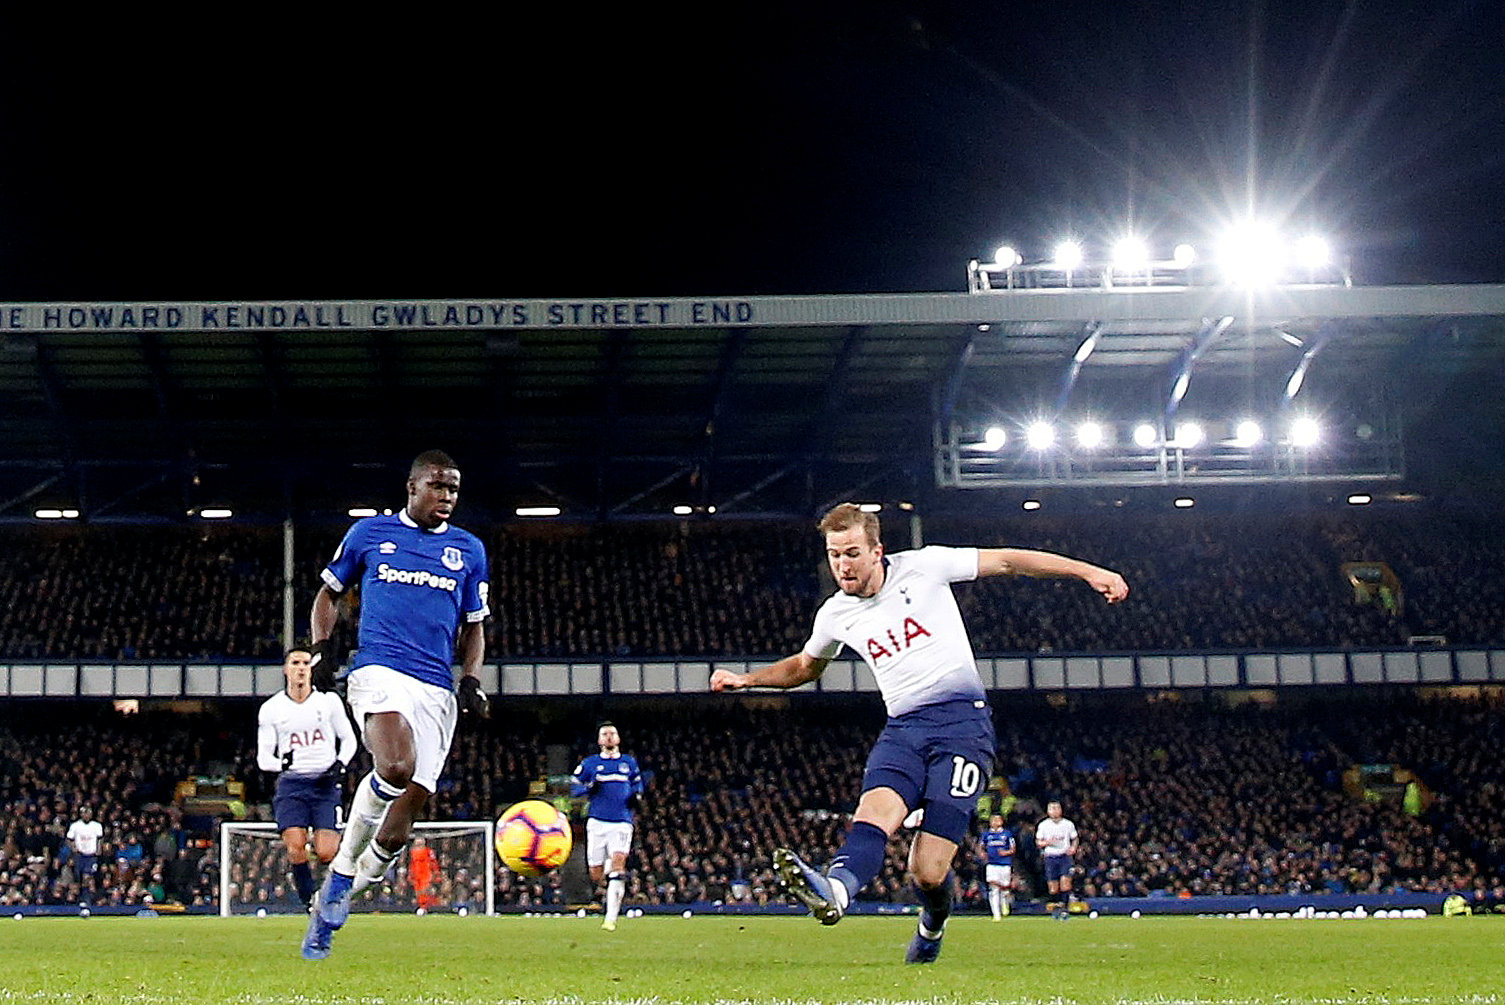 Harry Kane fires home Spurs' sixth goal. Picture: Action Images